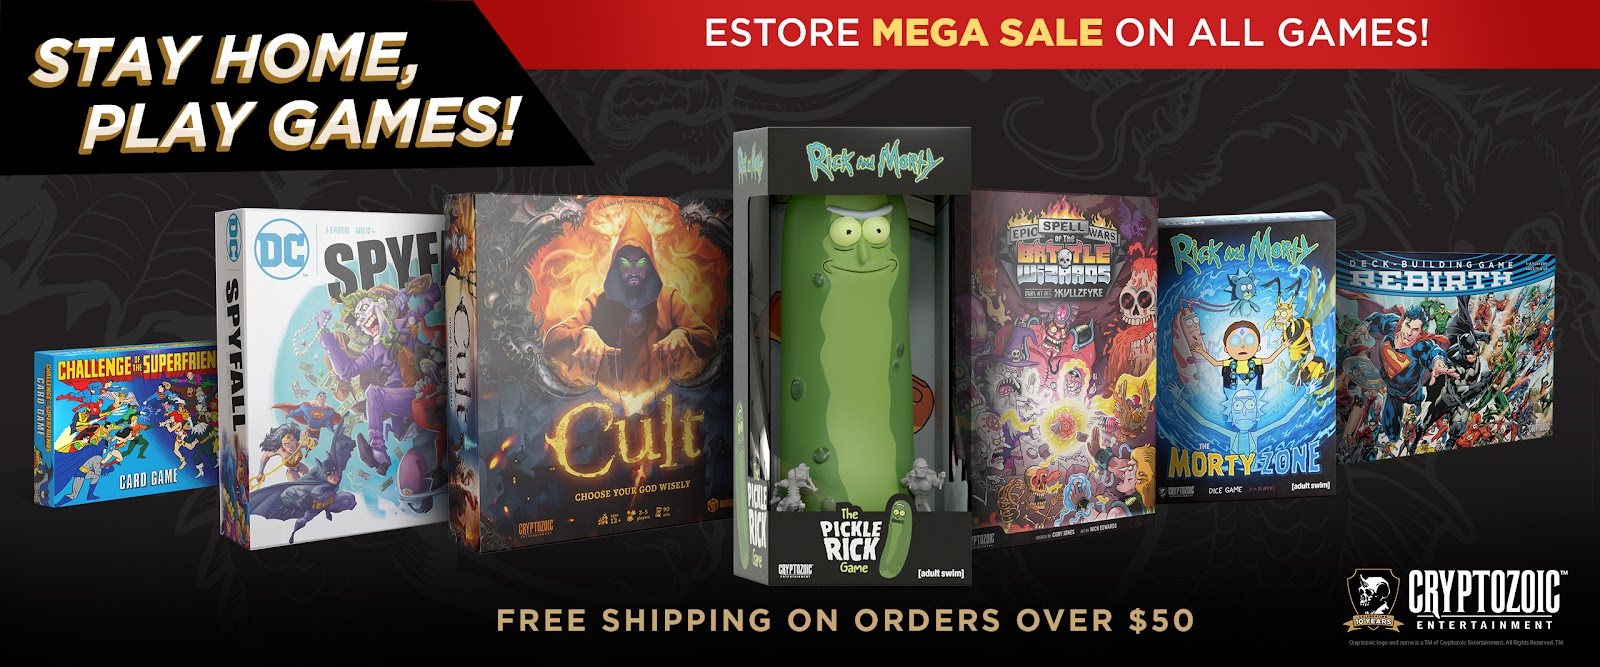 Stay Home, Play Games! Mega Sale of Cryptozoic Tabletop Games